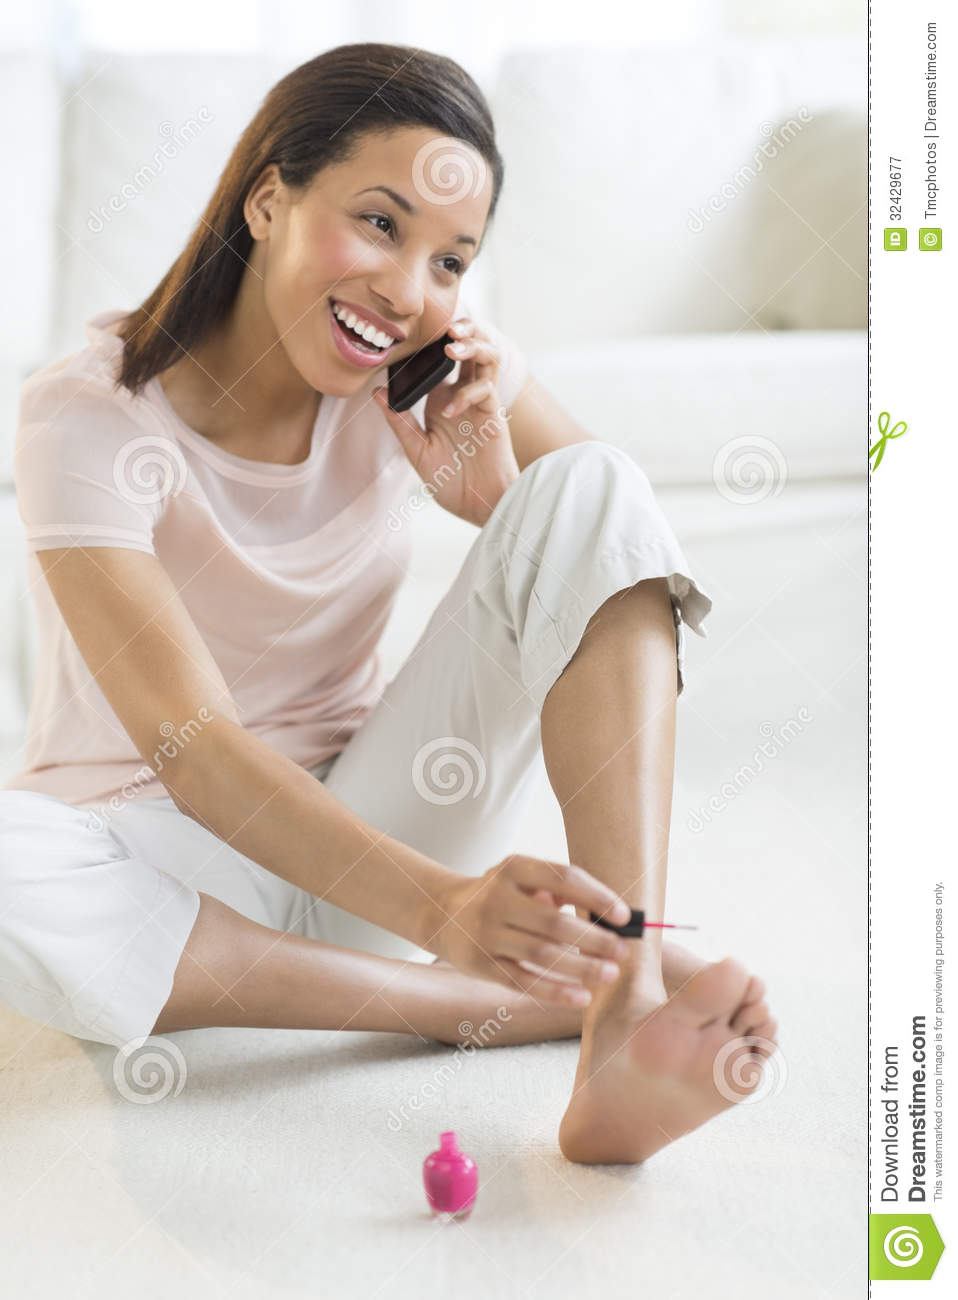 woman-phone-call-painting-toenails-home-full-length-happy-young-32429677.jpg